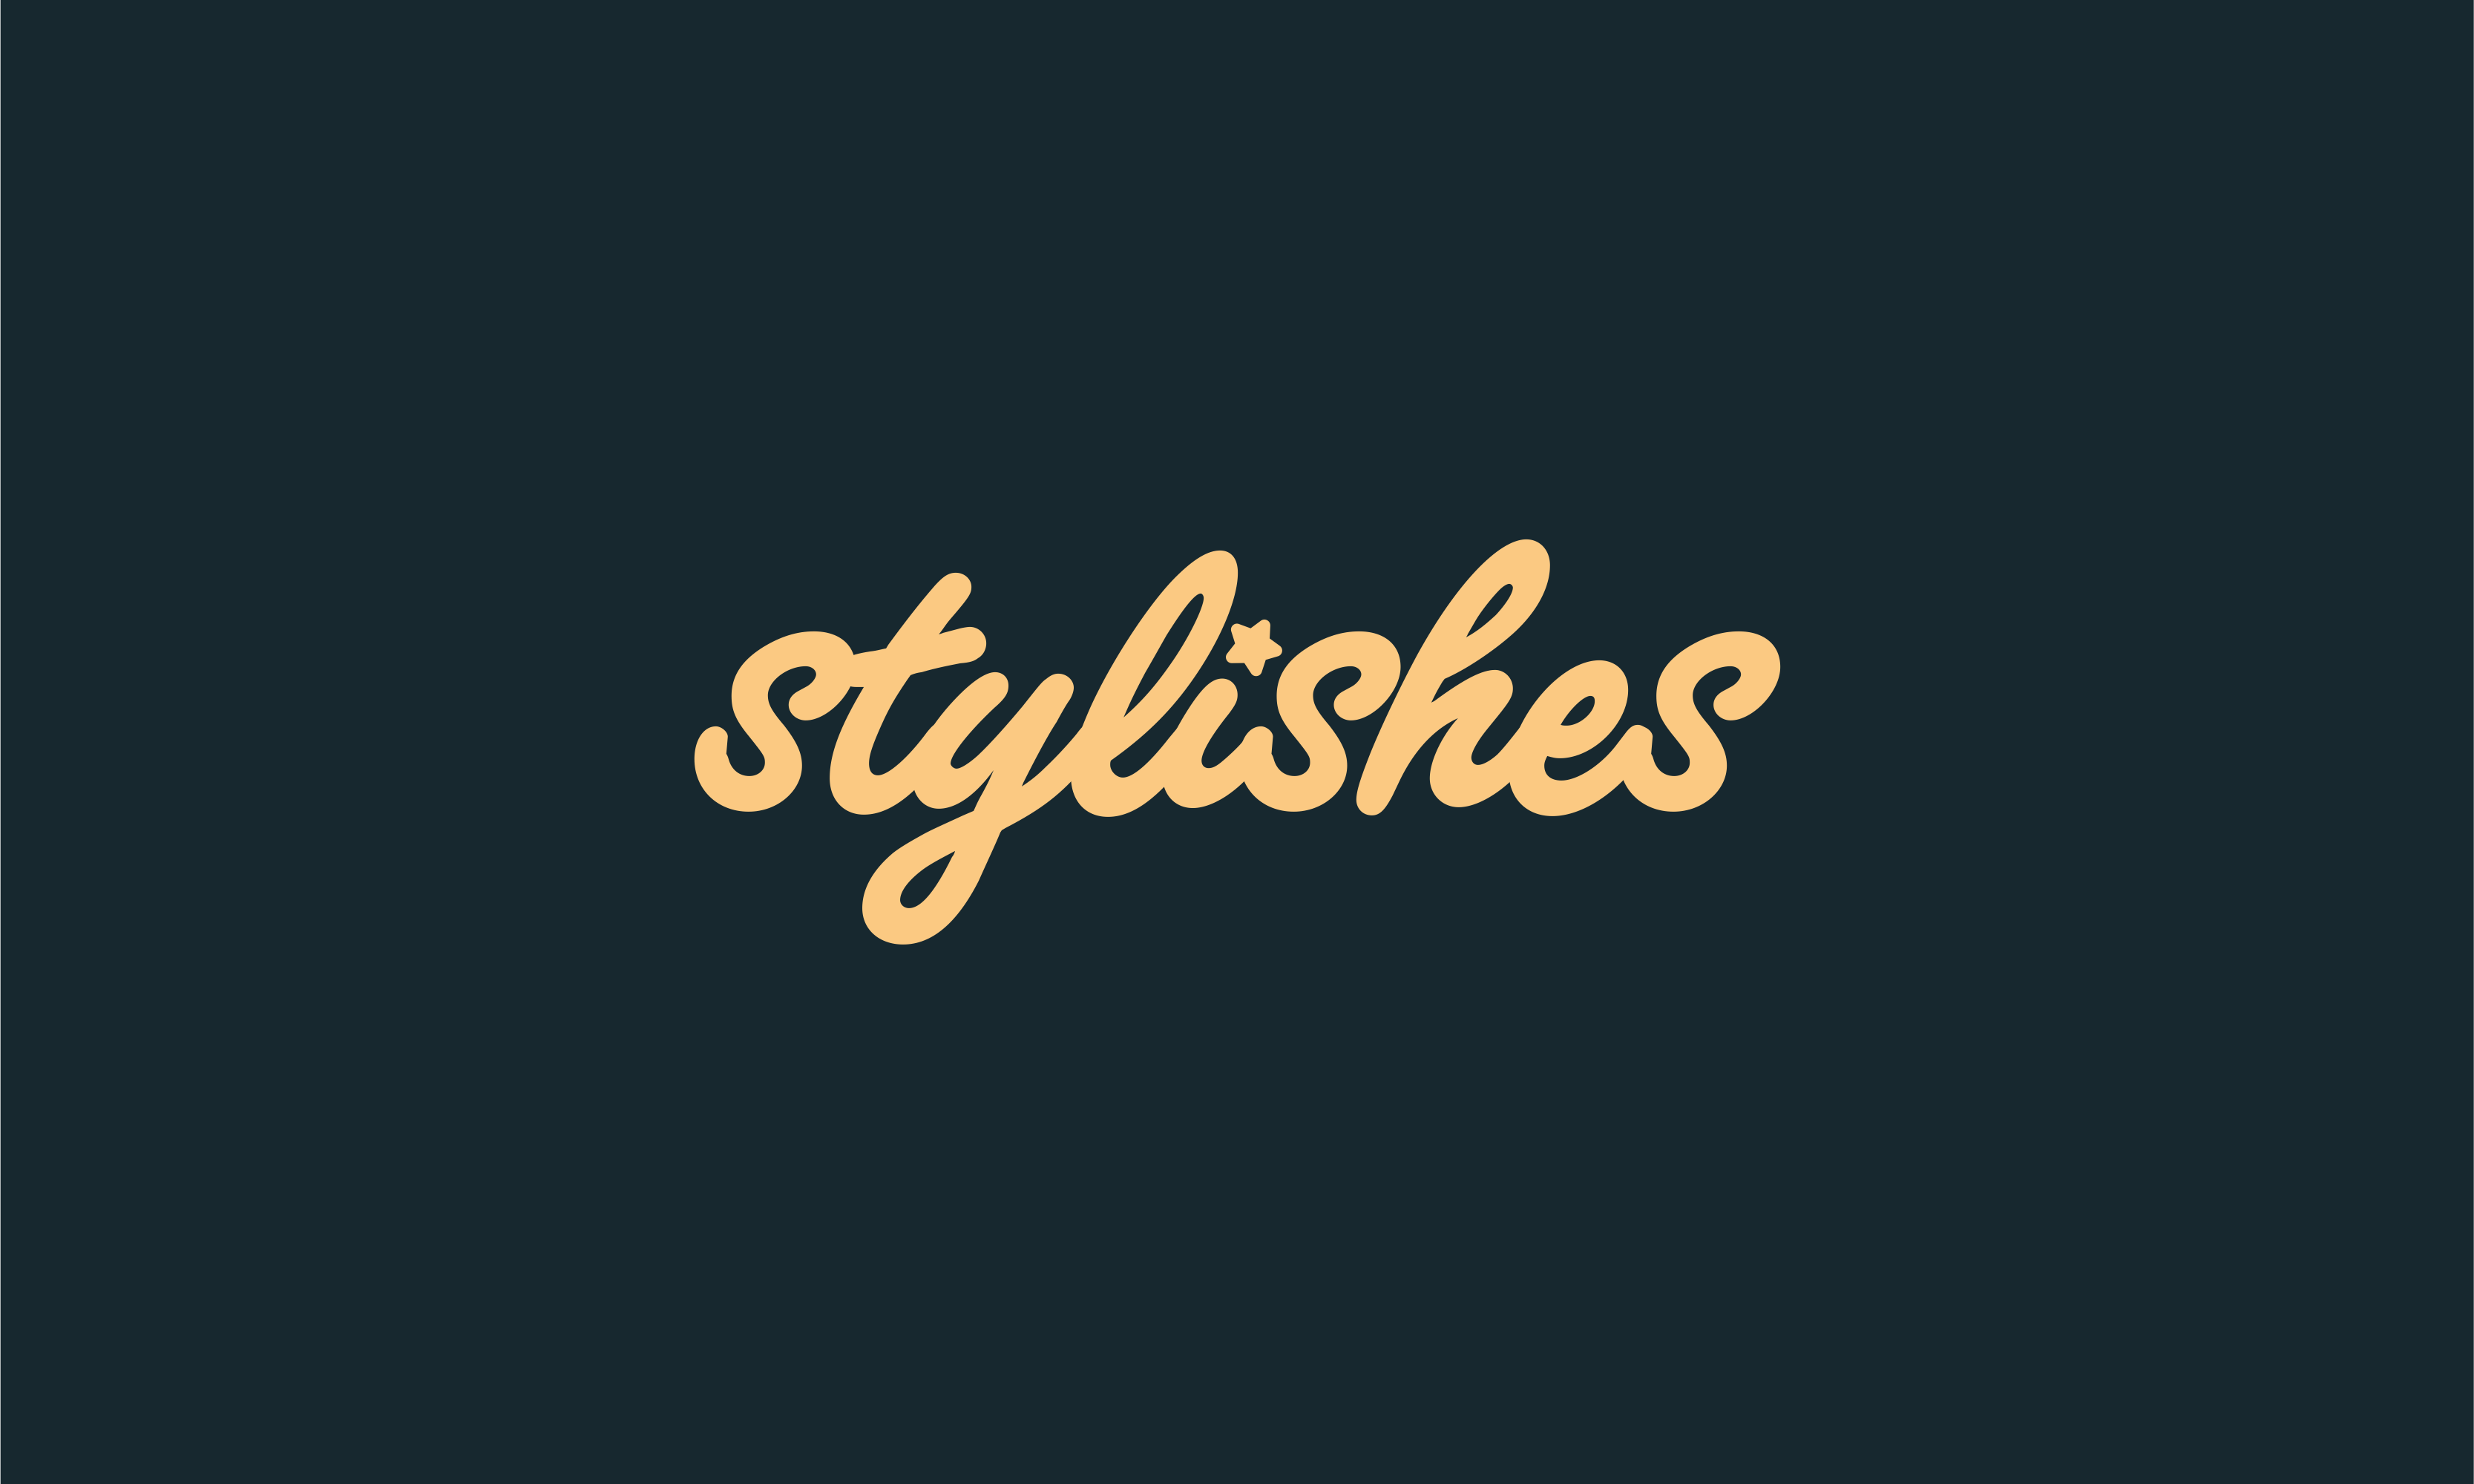 Stylishes